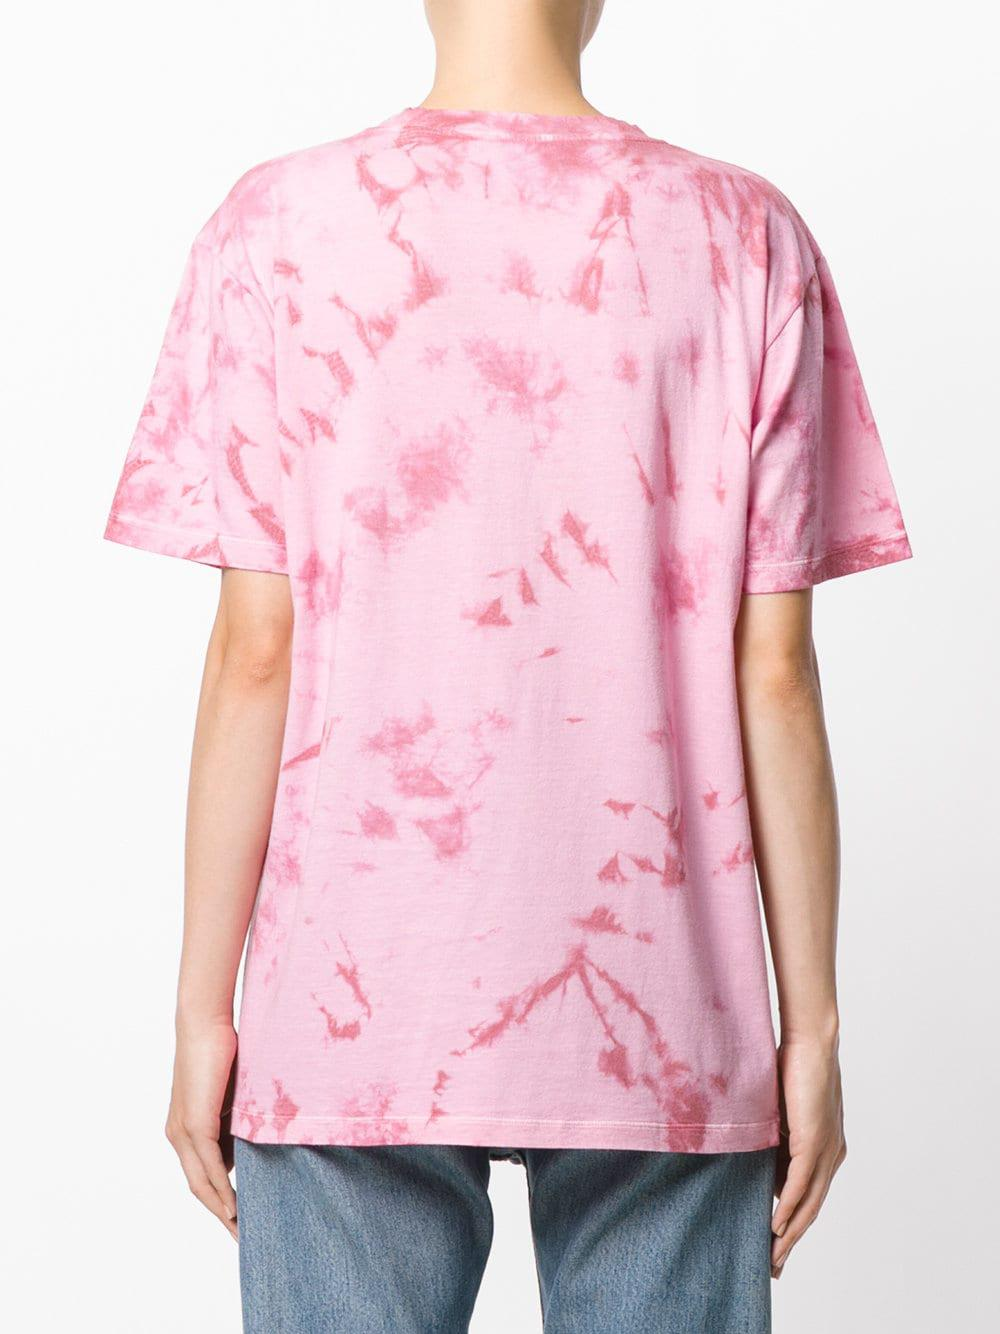 828504c9 Gucci - Pink Fish Embroidered Logo T-shirt - Lyst. View fullscreen